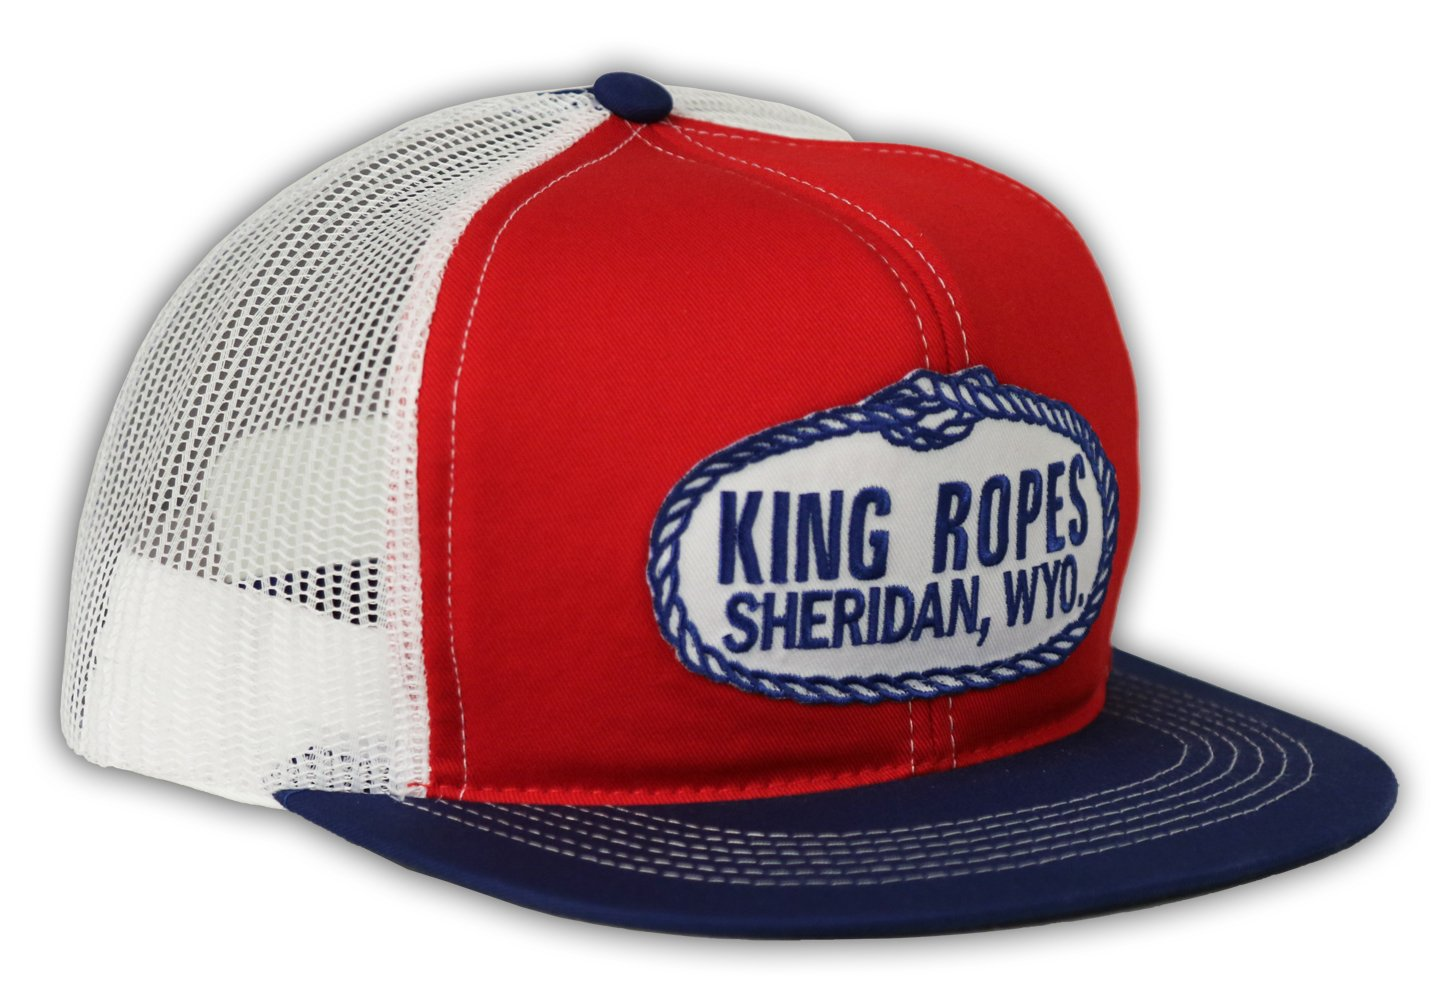 Kings Saddlery Brand King Ropes Snapback Adjustable Red, Blue, and White Mesh Hat